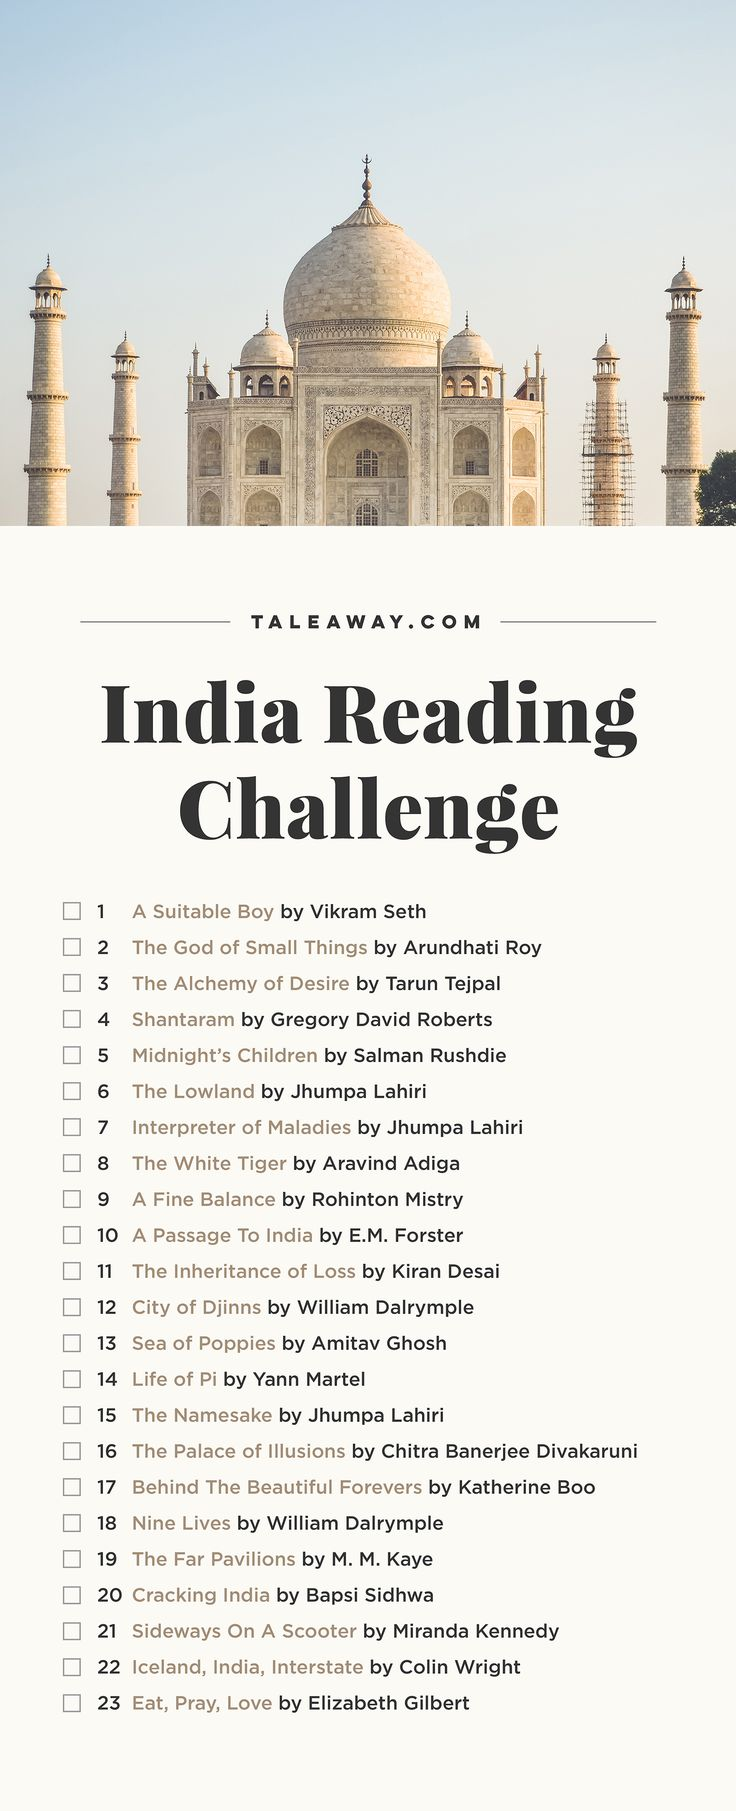 India Reading Challenge, Books Set In India - For more books visit www.taleway.com to find books set around the world. Ideas for those who like to travel, both in life and in fiction. reading challenge, india reading challenge, book challenge, books you must read, books from around the world, world books, books and travel, travel reading list, reading list, books around the world, books to read, india books, india books novels, india travel